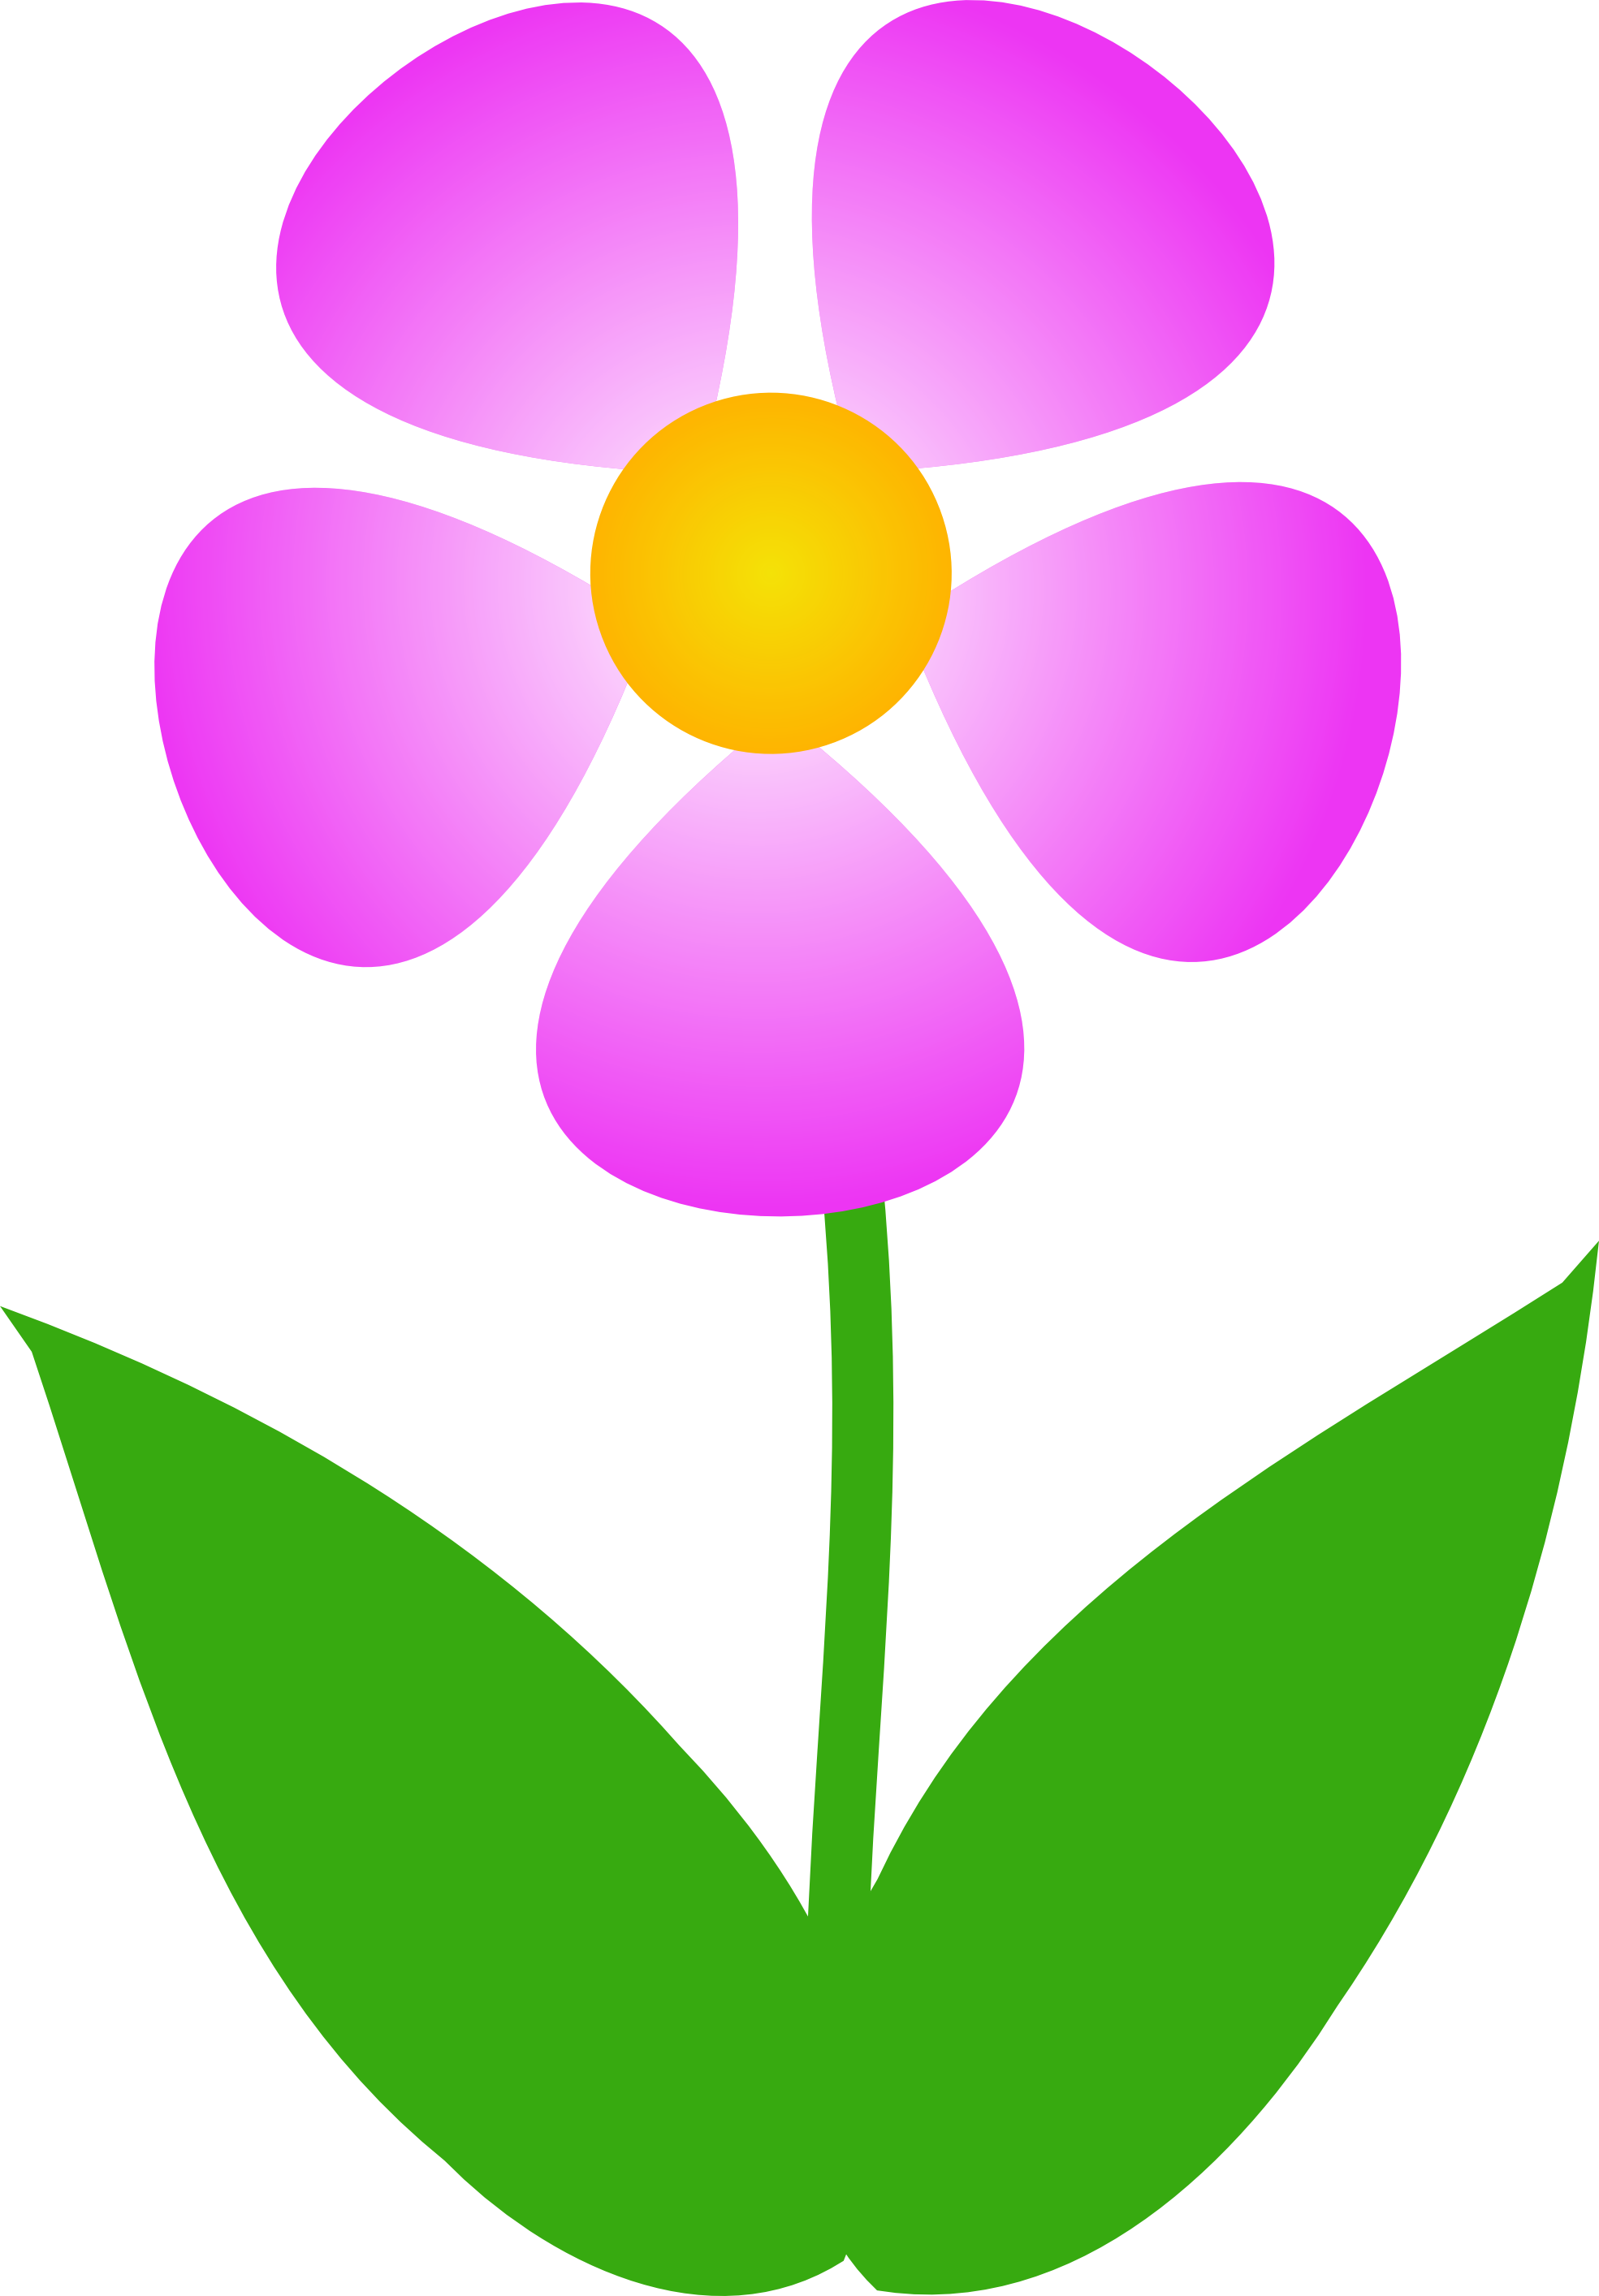 Flowers clipart tub. Free images of flower